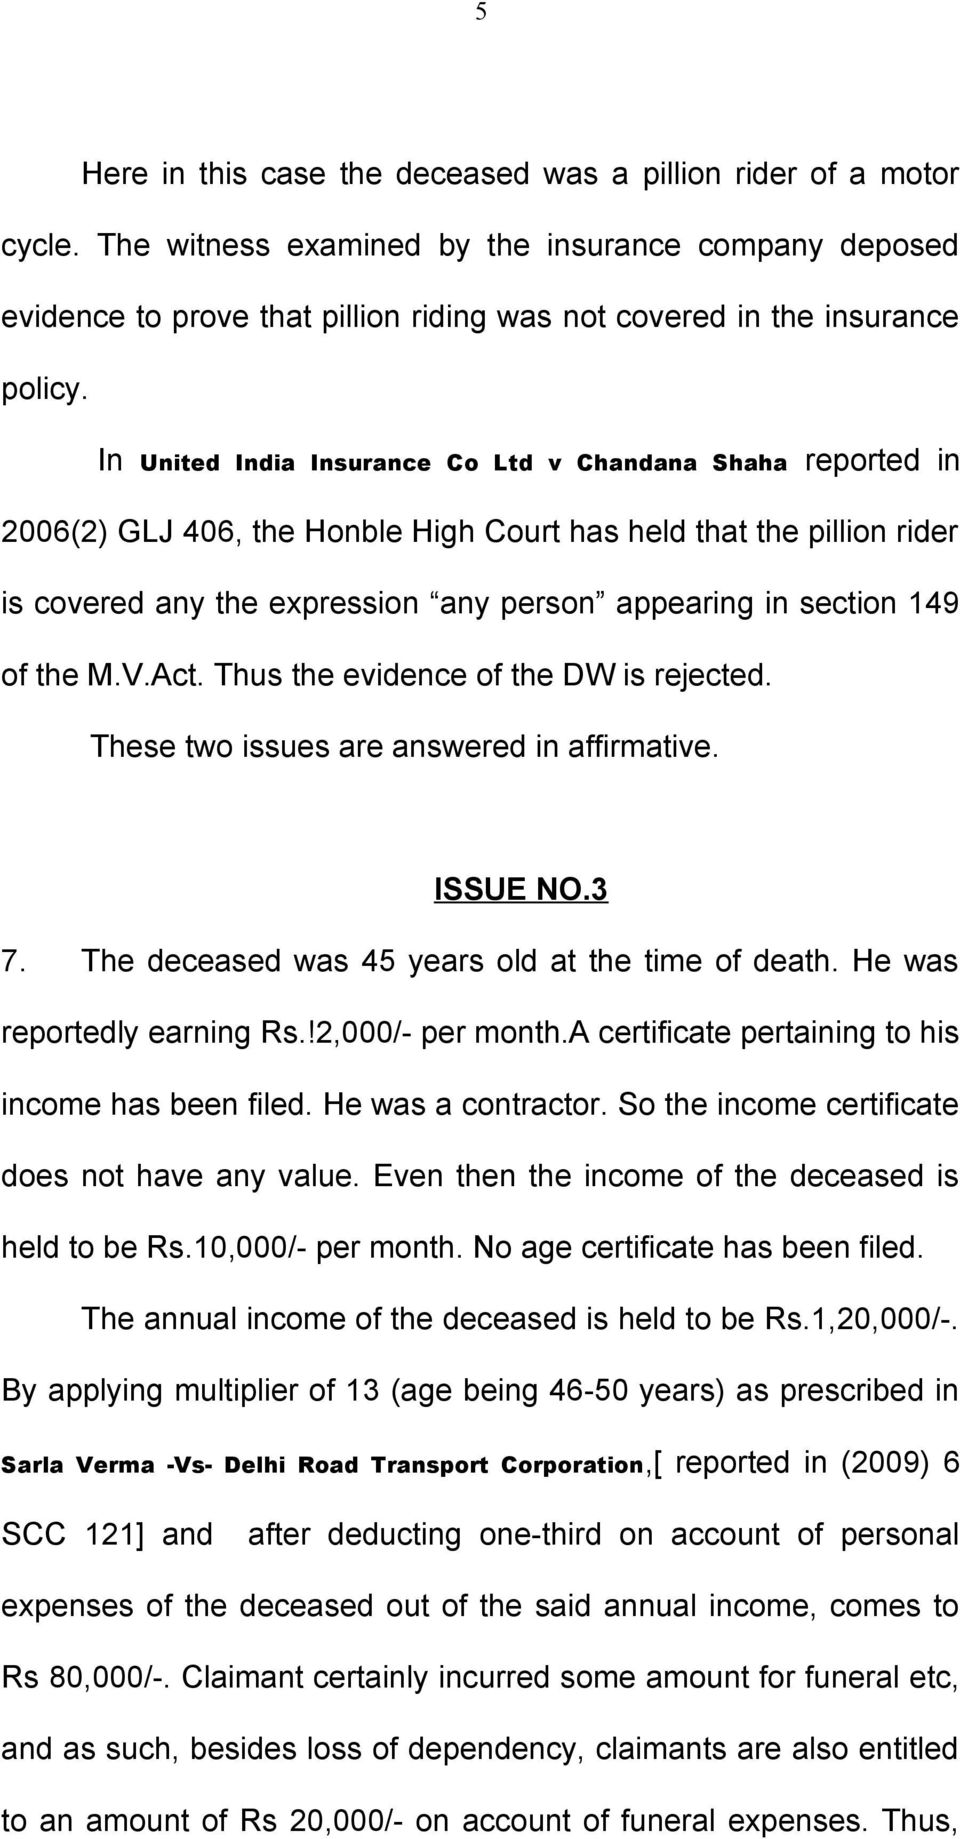 In United India Insurance Co Ltd v Chandana Shaha reported in 2006(2) GLJ 406, the Honble High Court has held that the pillion rider is covered any the expression any person appearing in section 149